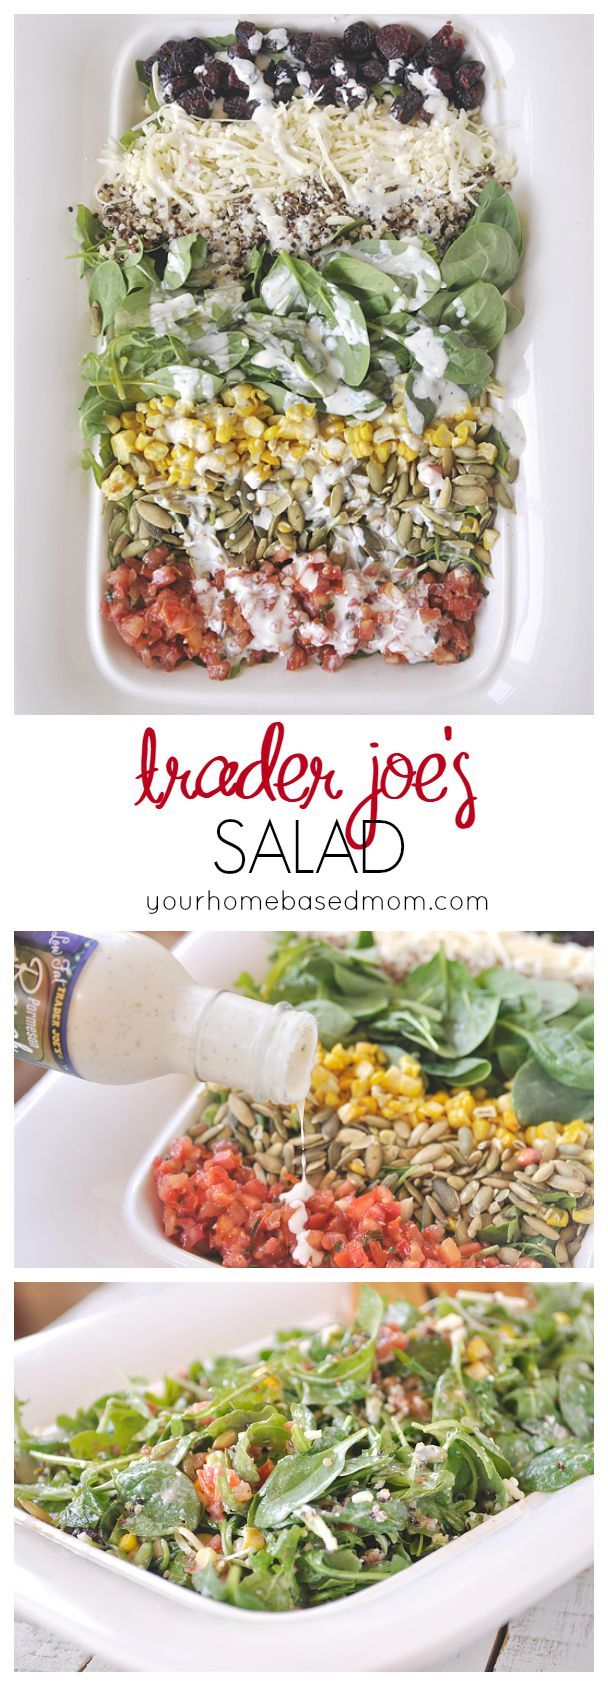 Trader Joe's Salad  -  fruit, veggies, cheese, nuts, dressing.  it sounds really good, want to try.  healthy, low carb.   lj